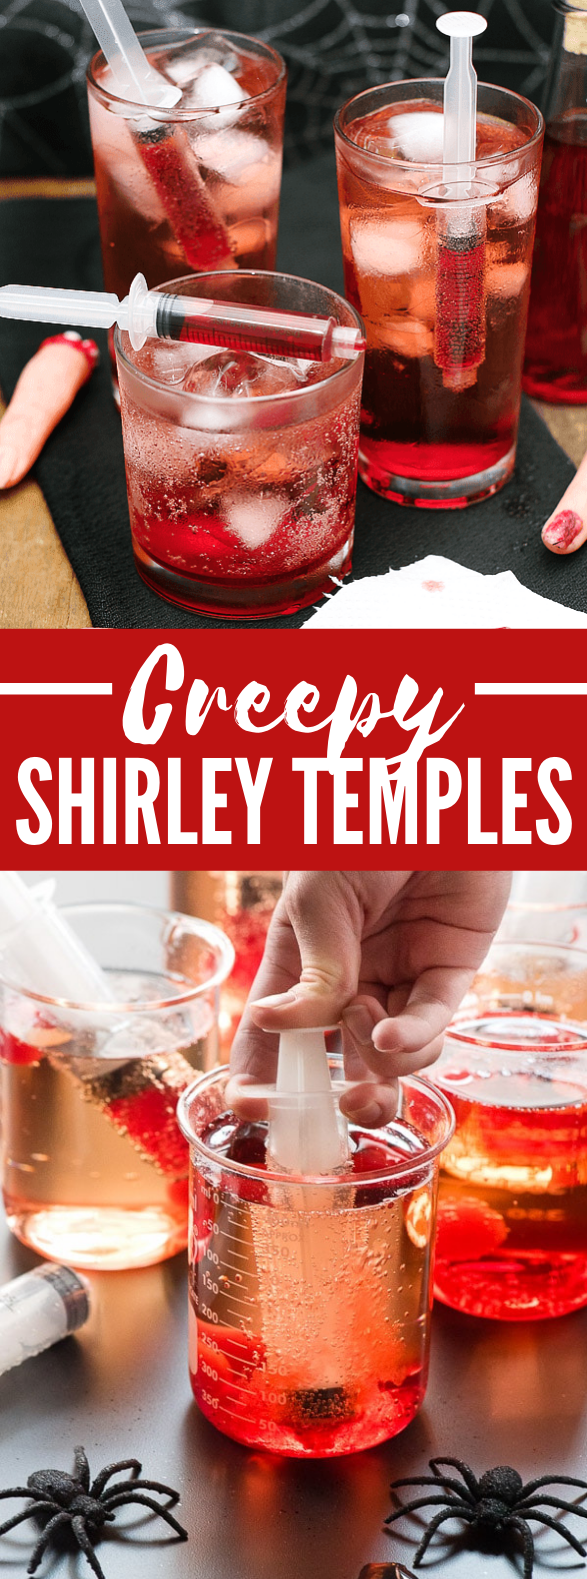 CREEPY SHIRLEY TEMPLES #drinks #nonalcoholic